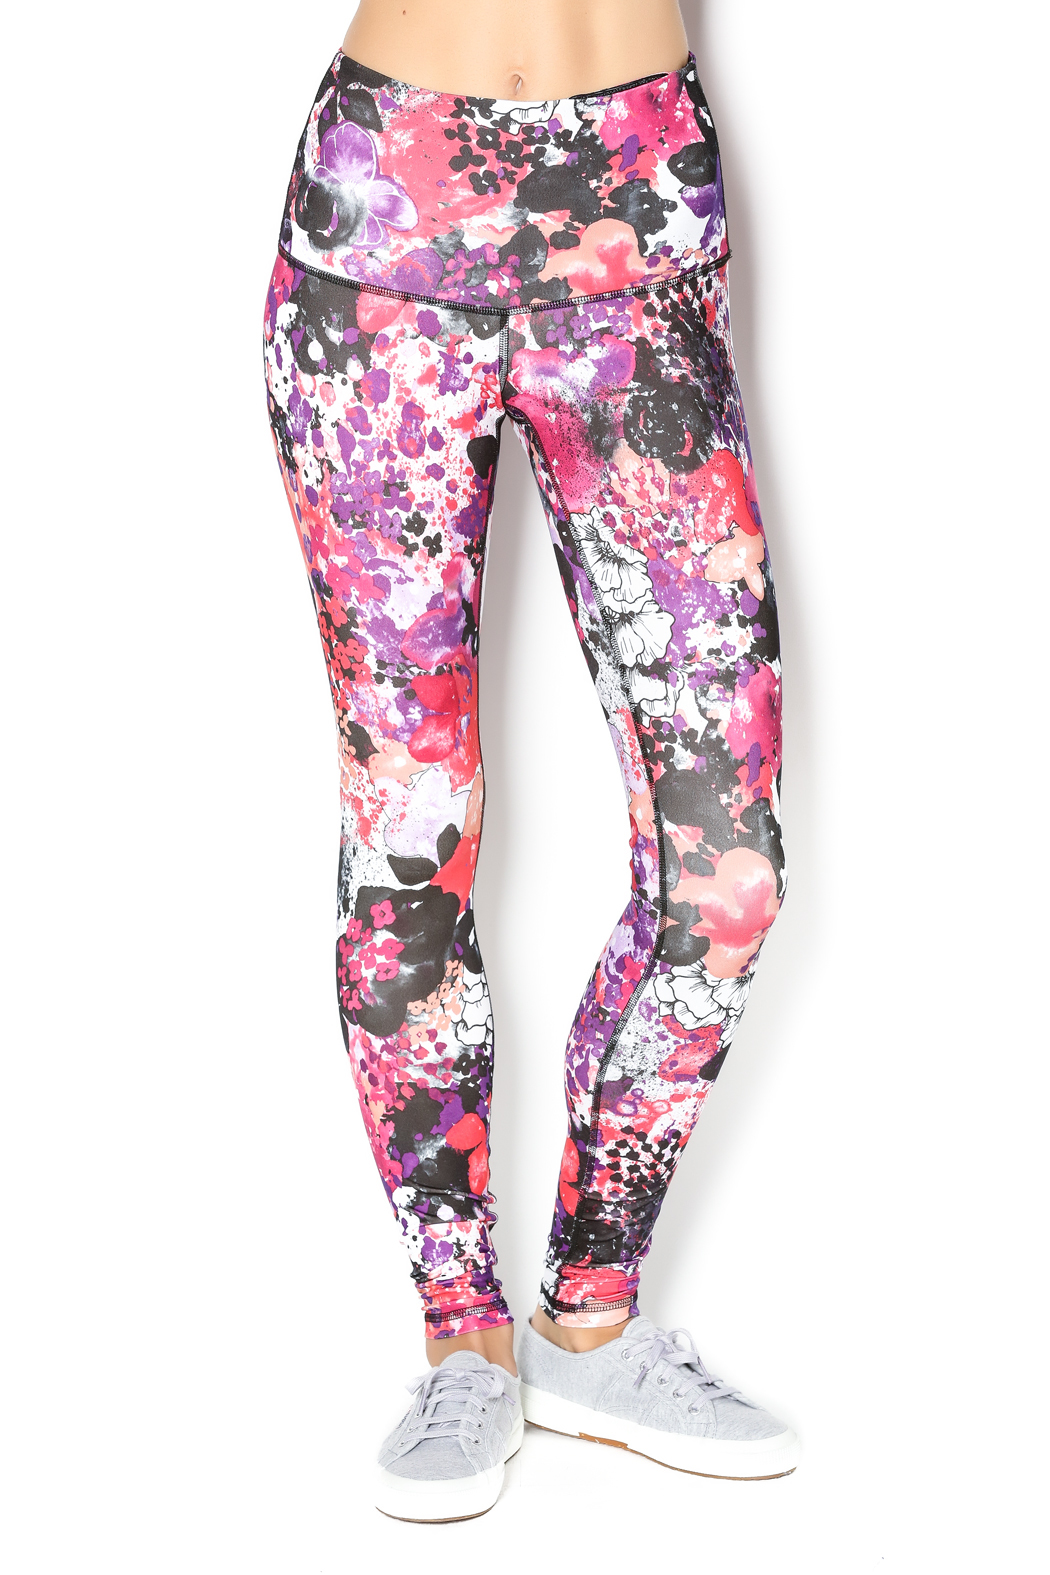 819d911cdef75d Karma Kata Tight Legging from Kansas City by Trio Movement Boutique ...